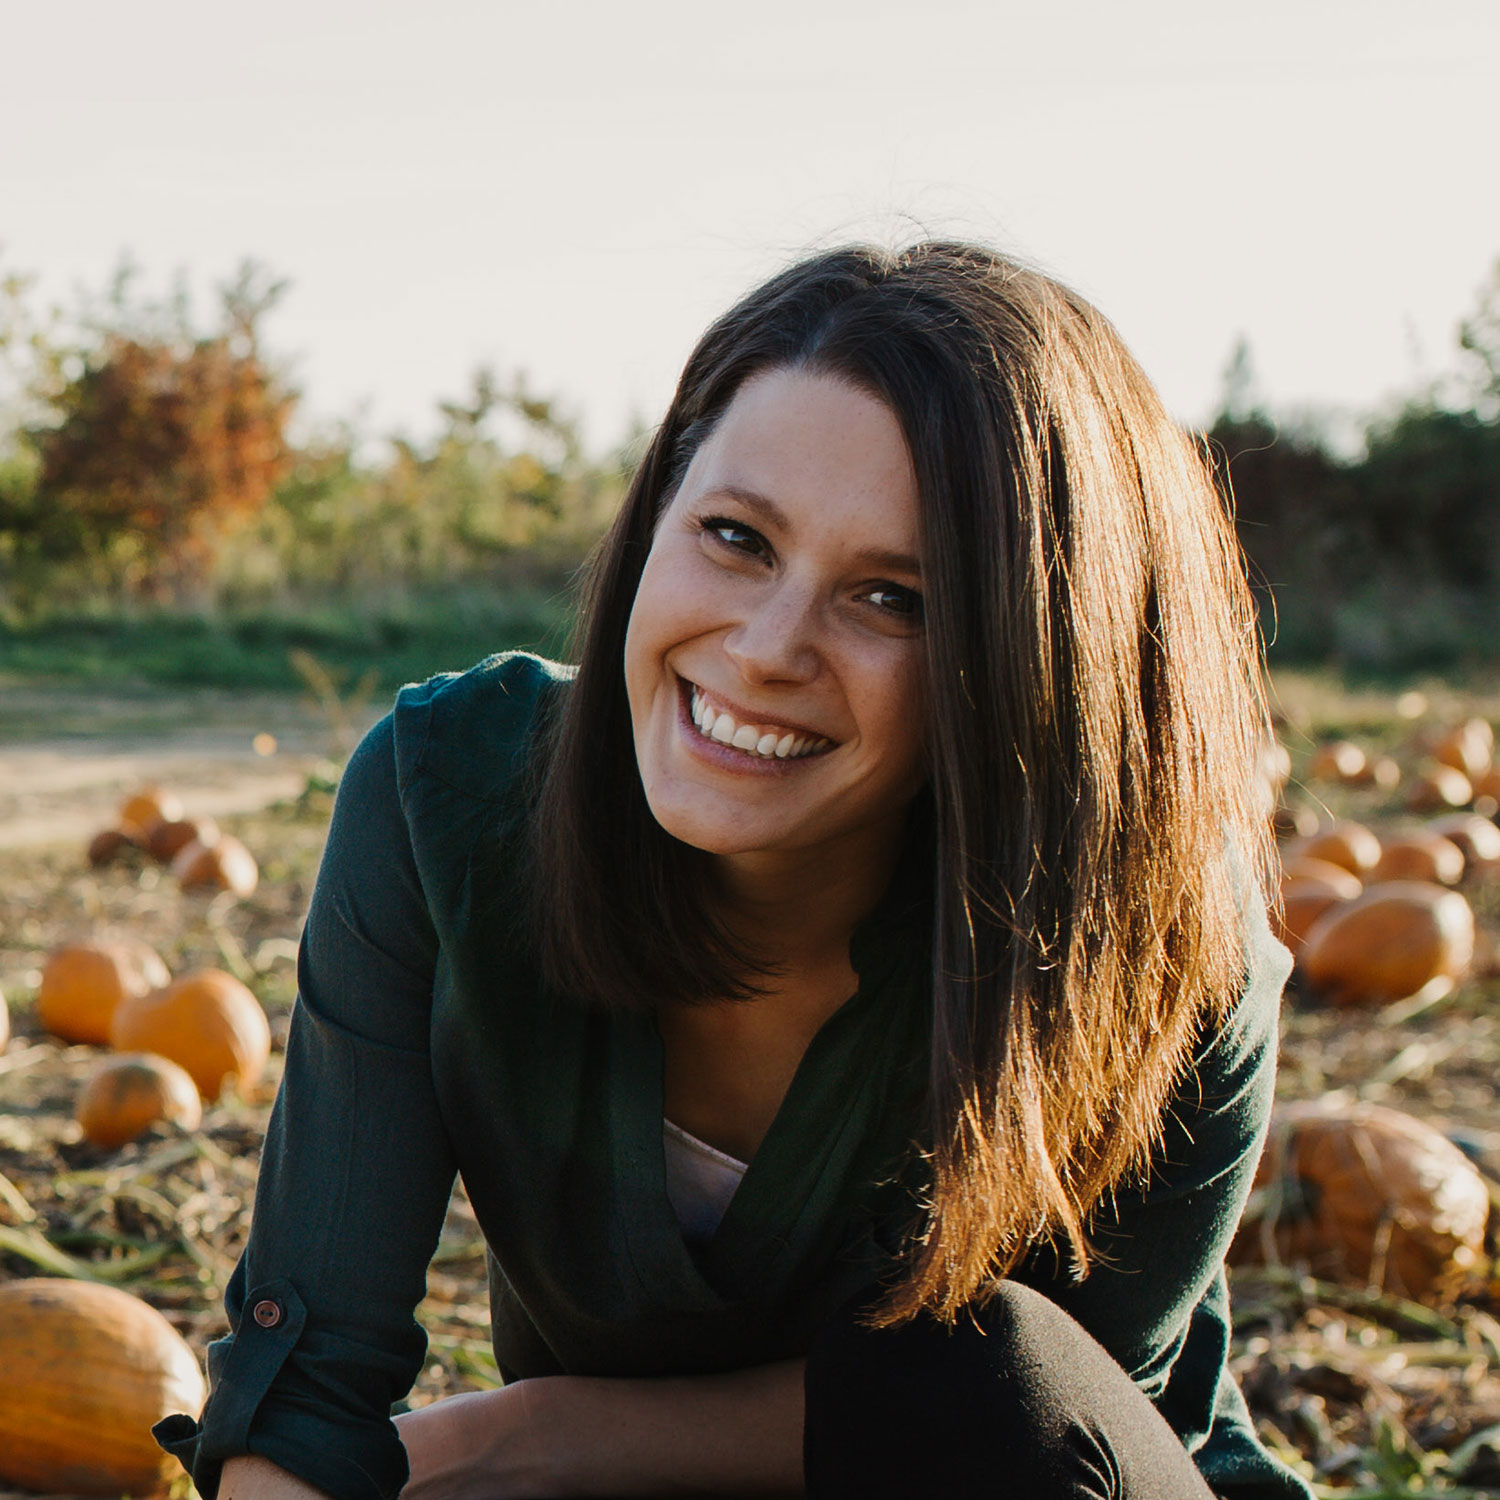 Lindsey Tierney - Adminiscraytive Assistant 😐Lindsey is the linchpin—the other half of Tierney Studio, Crayligraphy and of course, Colin. She makes all things work through organizing events, planning workshops and managing the day-to-day responsibilities to keep Crayligraphy alive and well!